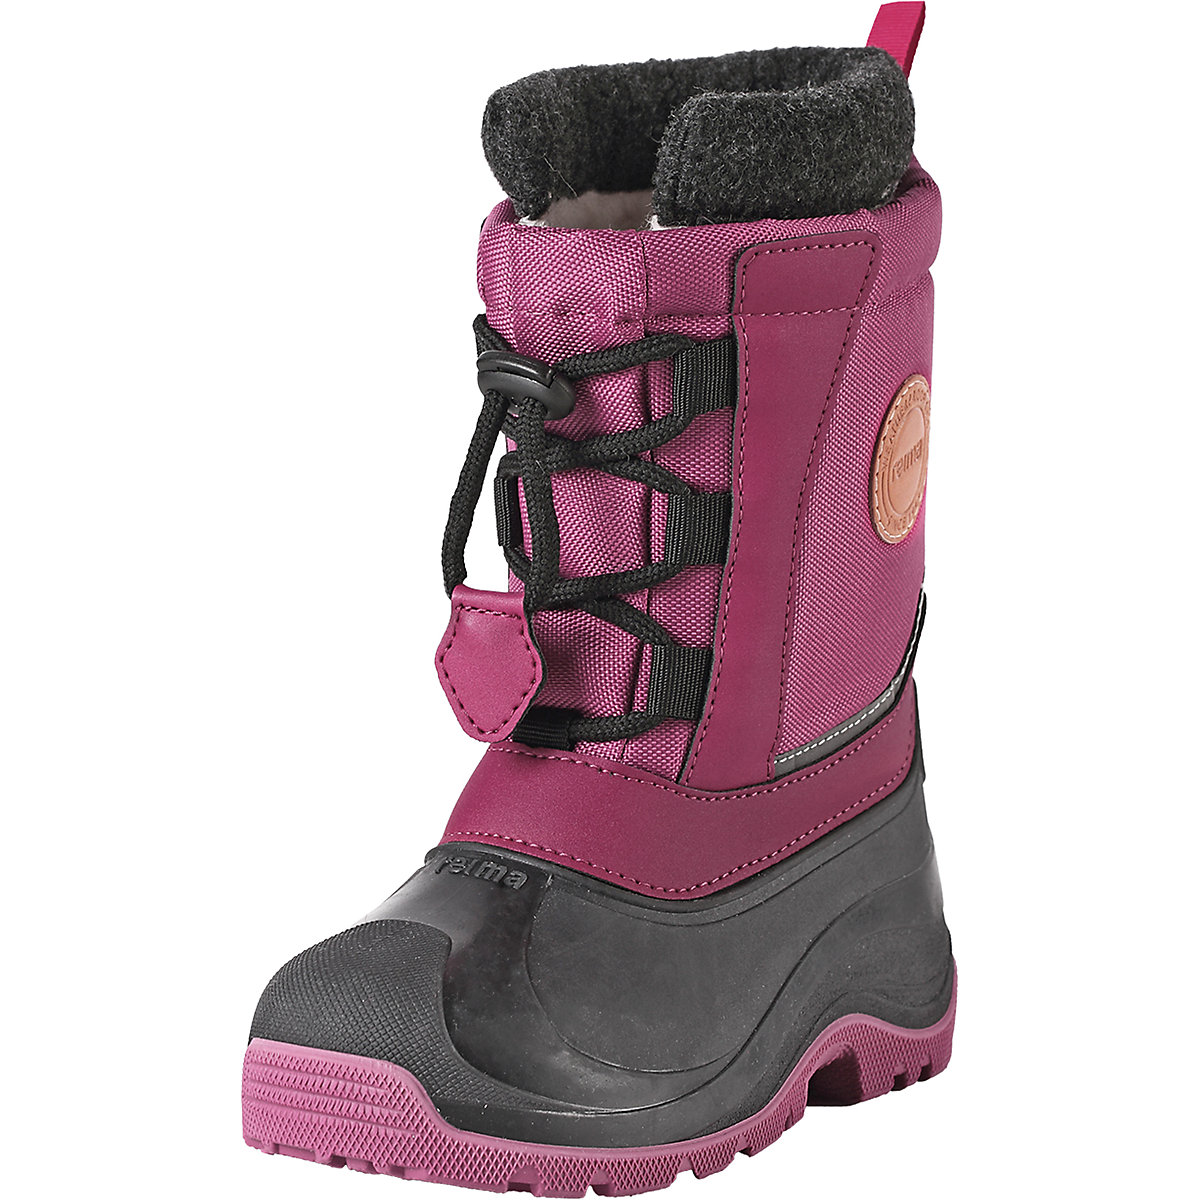 REIMA Boots 8624803 for girls winter girl  children shoes рюкзак o neill o neill on355buqjv83